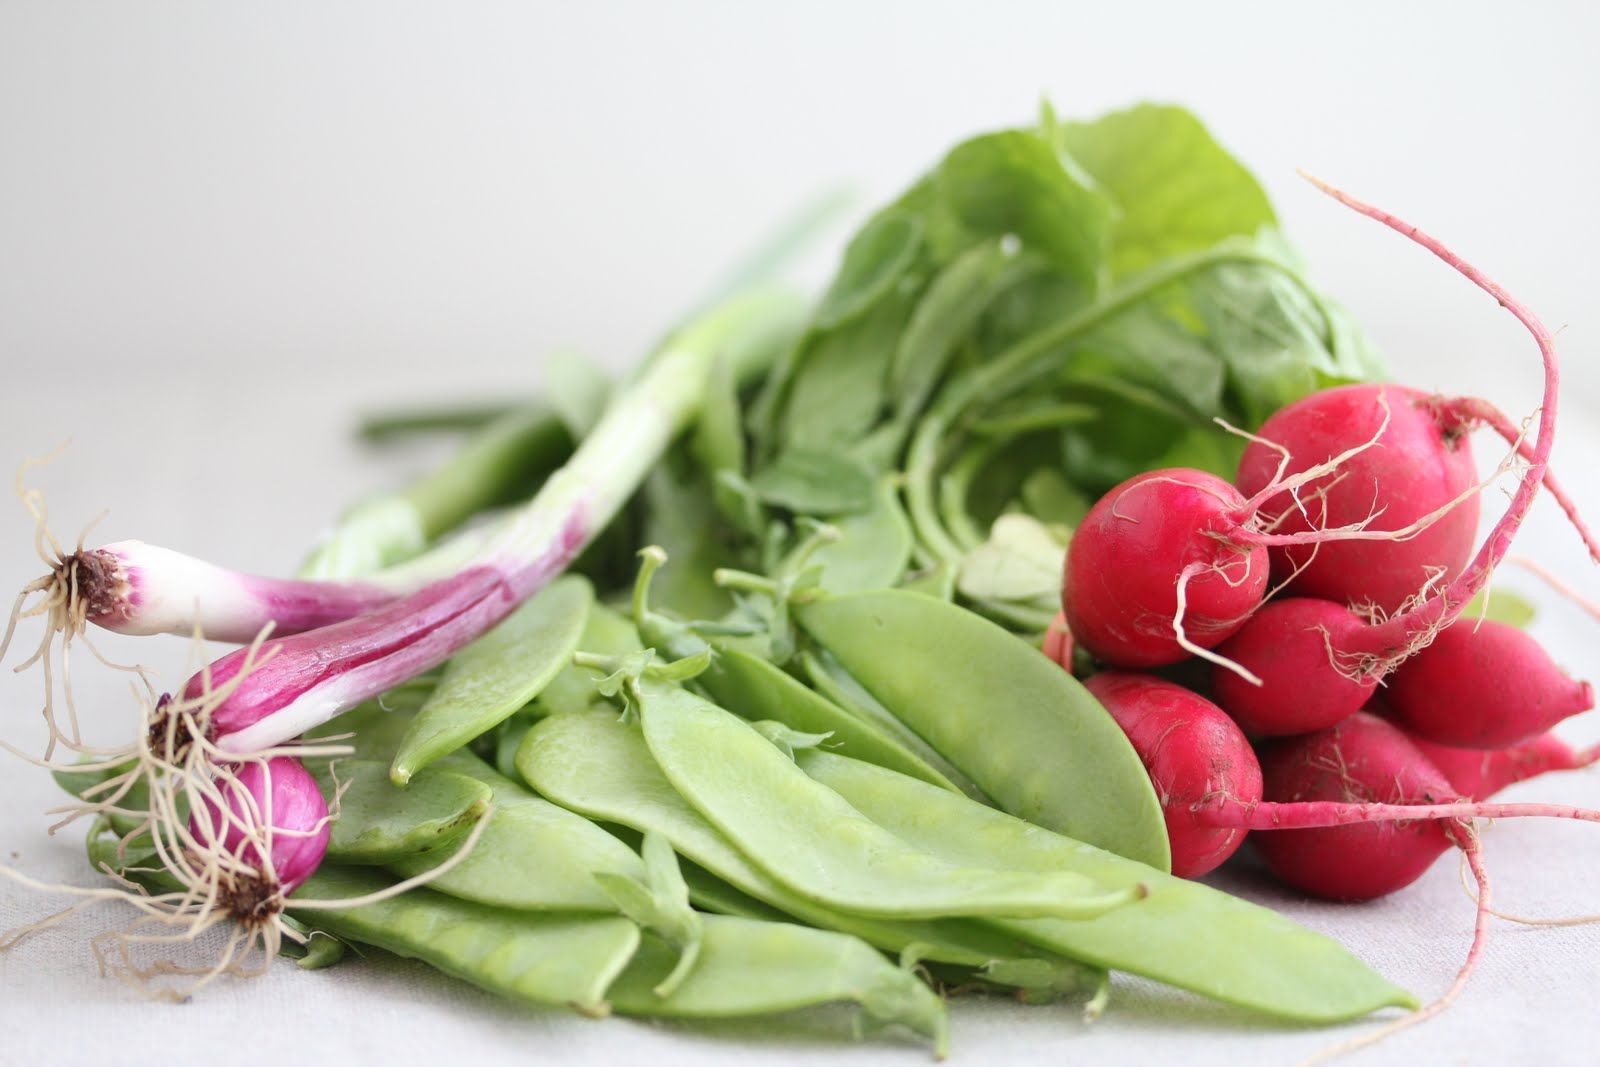 Radishes from my CSA Box, and Scallions and Snow Peas from the Farmer's Market